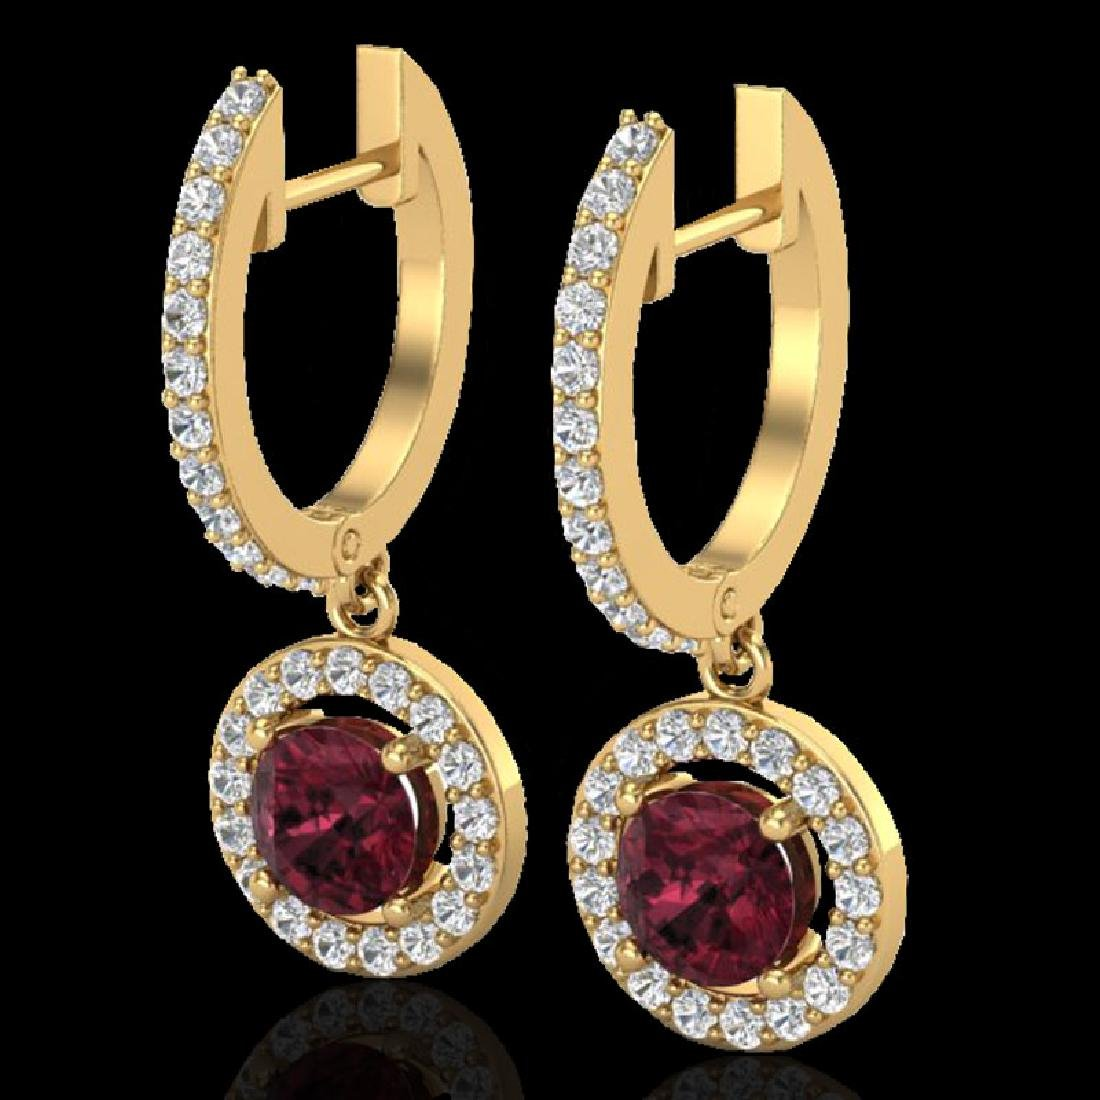 1.75 CTW Garnet & Micro Halo VS/SI Diamond Earrings 18K